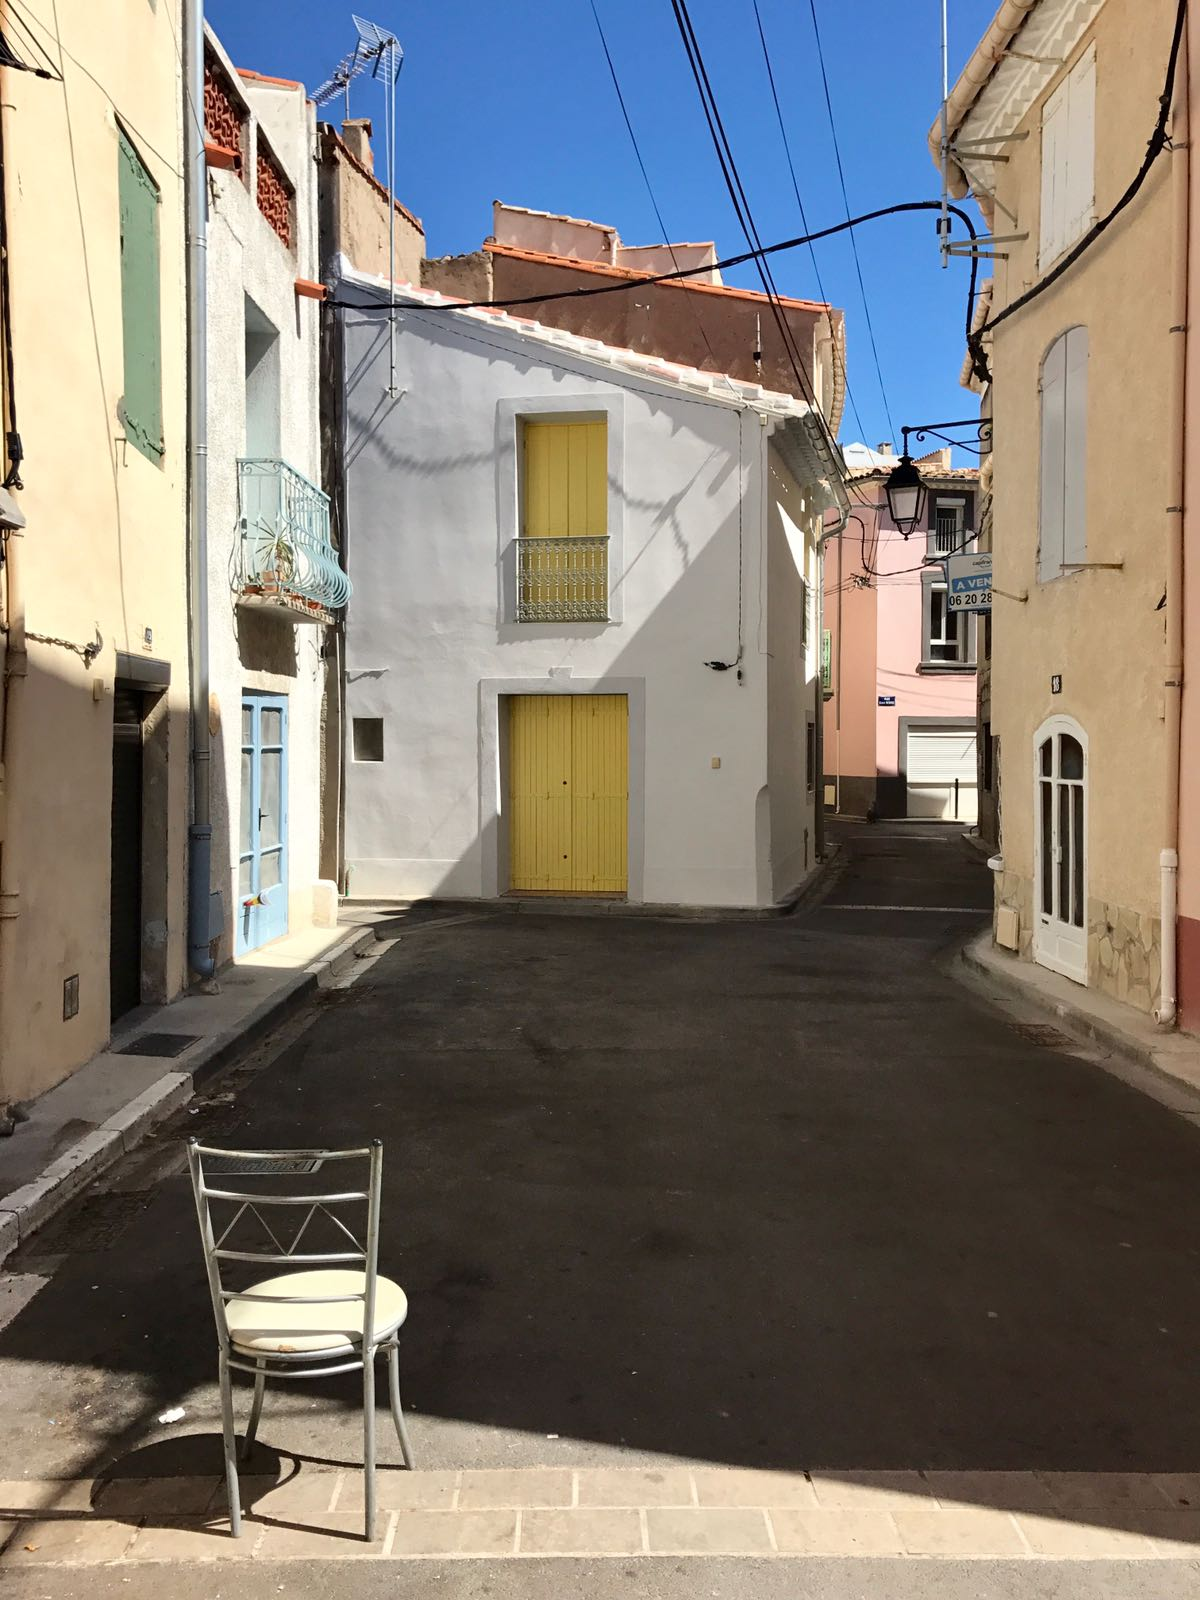 A street in Marseillan showing the colourful doors and shutters the houses have